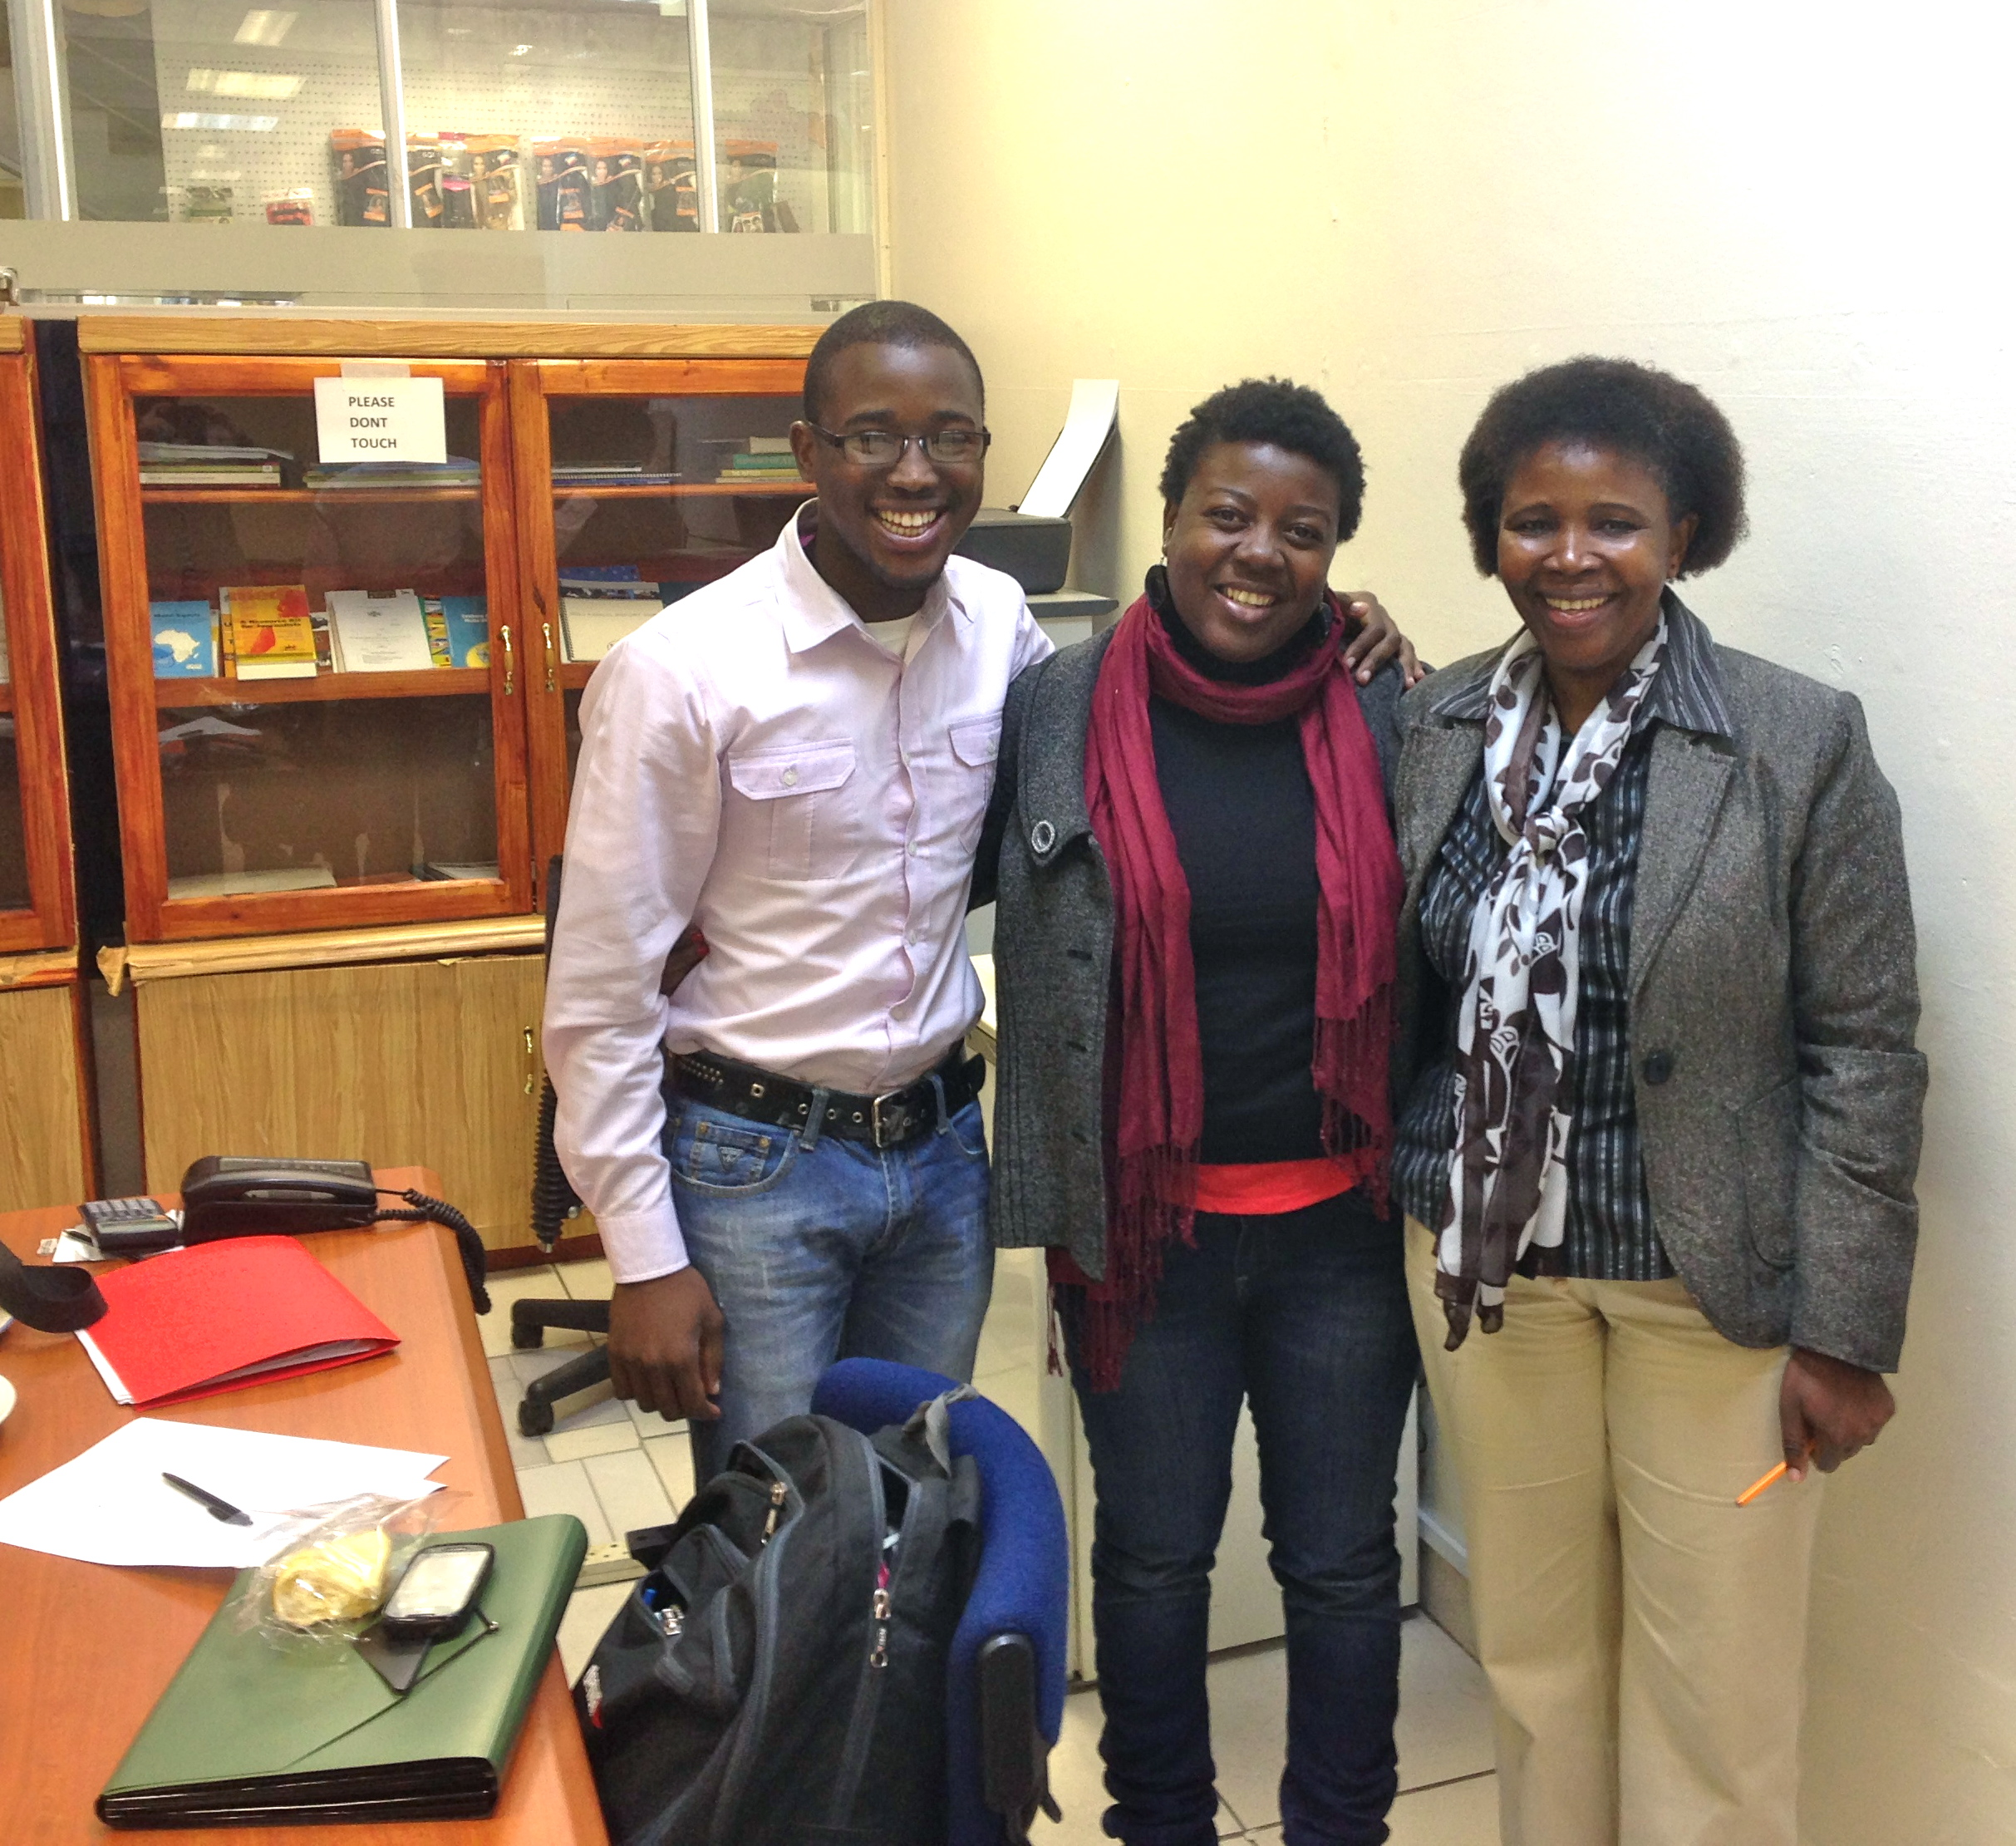 MISA and Save the Children media training. From L-R: Ian Lwazi Dlamini (student and journalist), Koliwe Majama (MISA project coordinator), Siphiwe Nkambule (Super Buddies youth magazine)